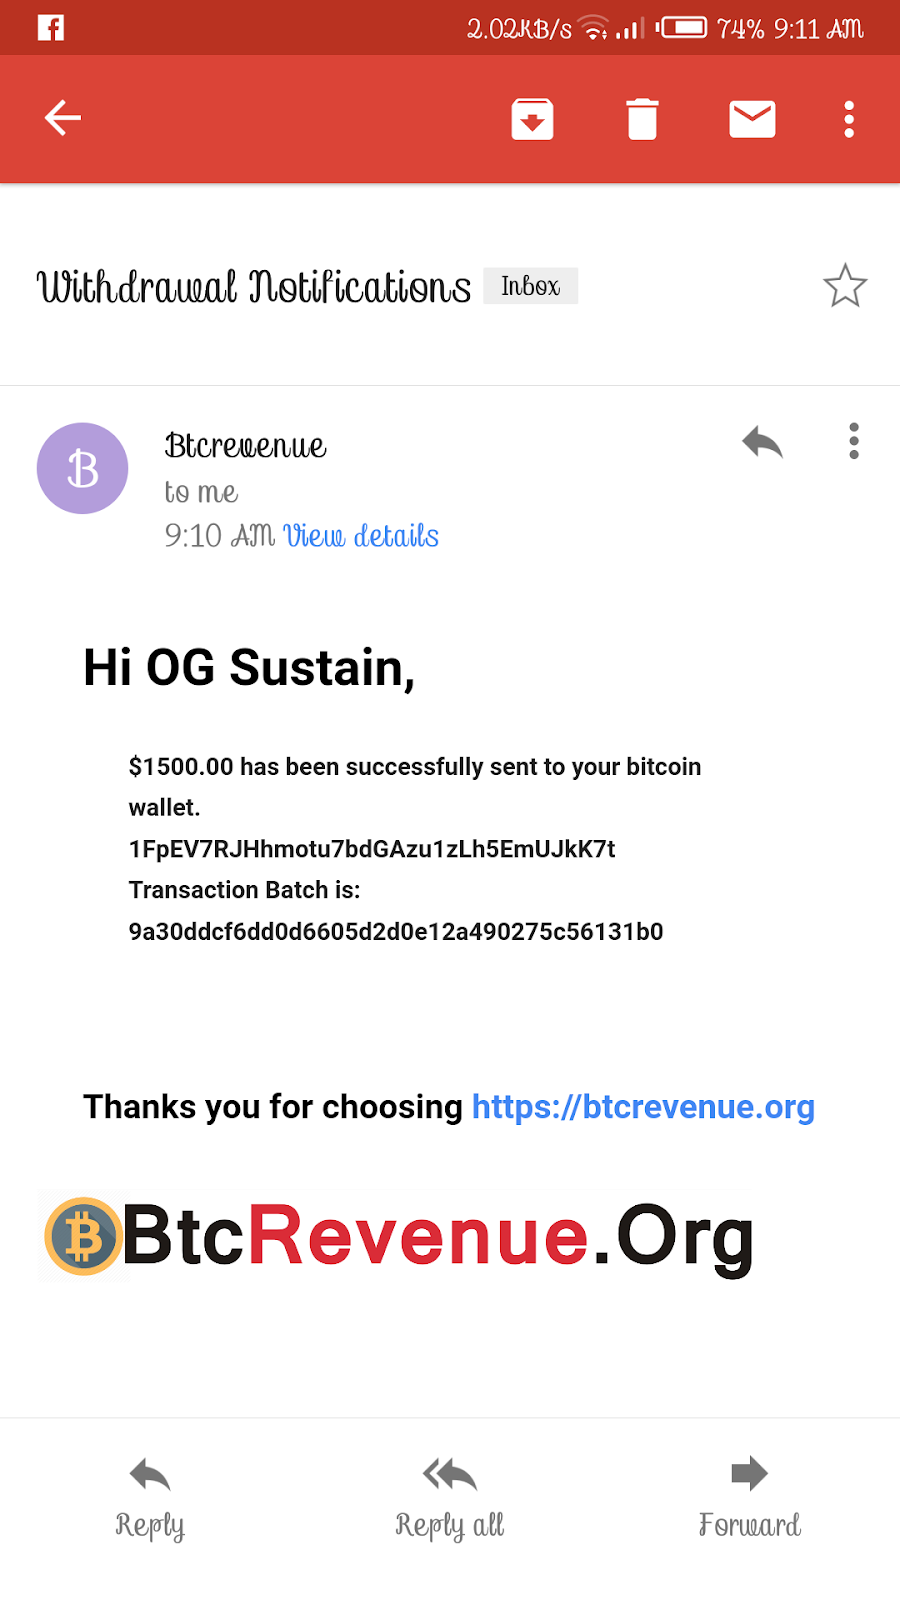 Btcrevenue.org Payment Proof